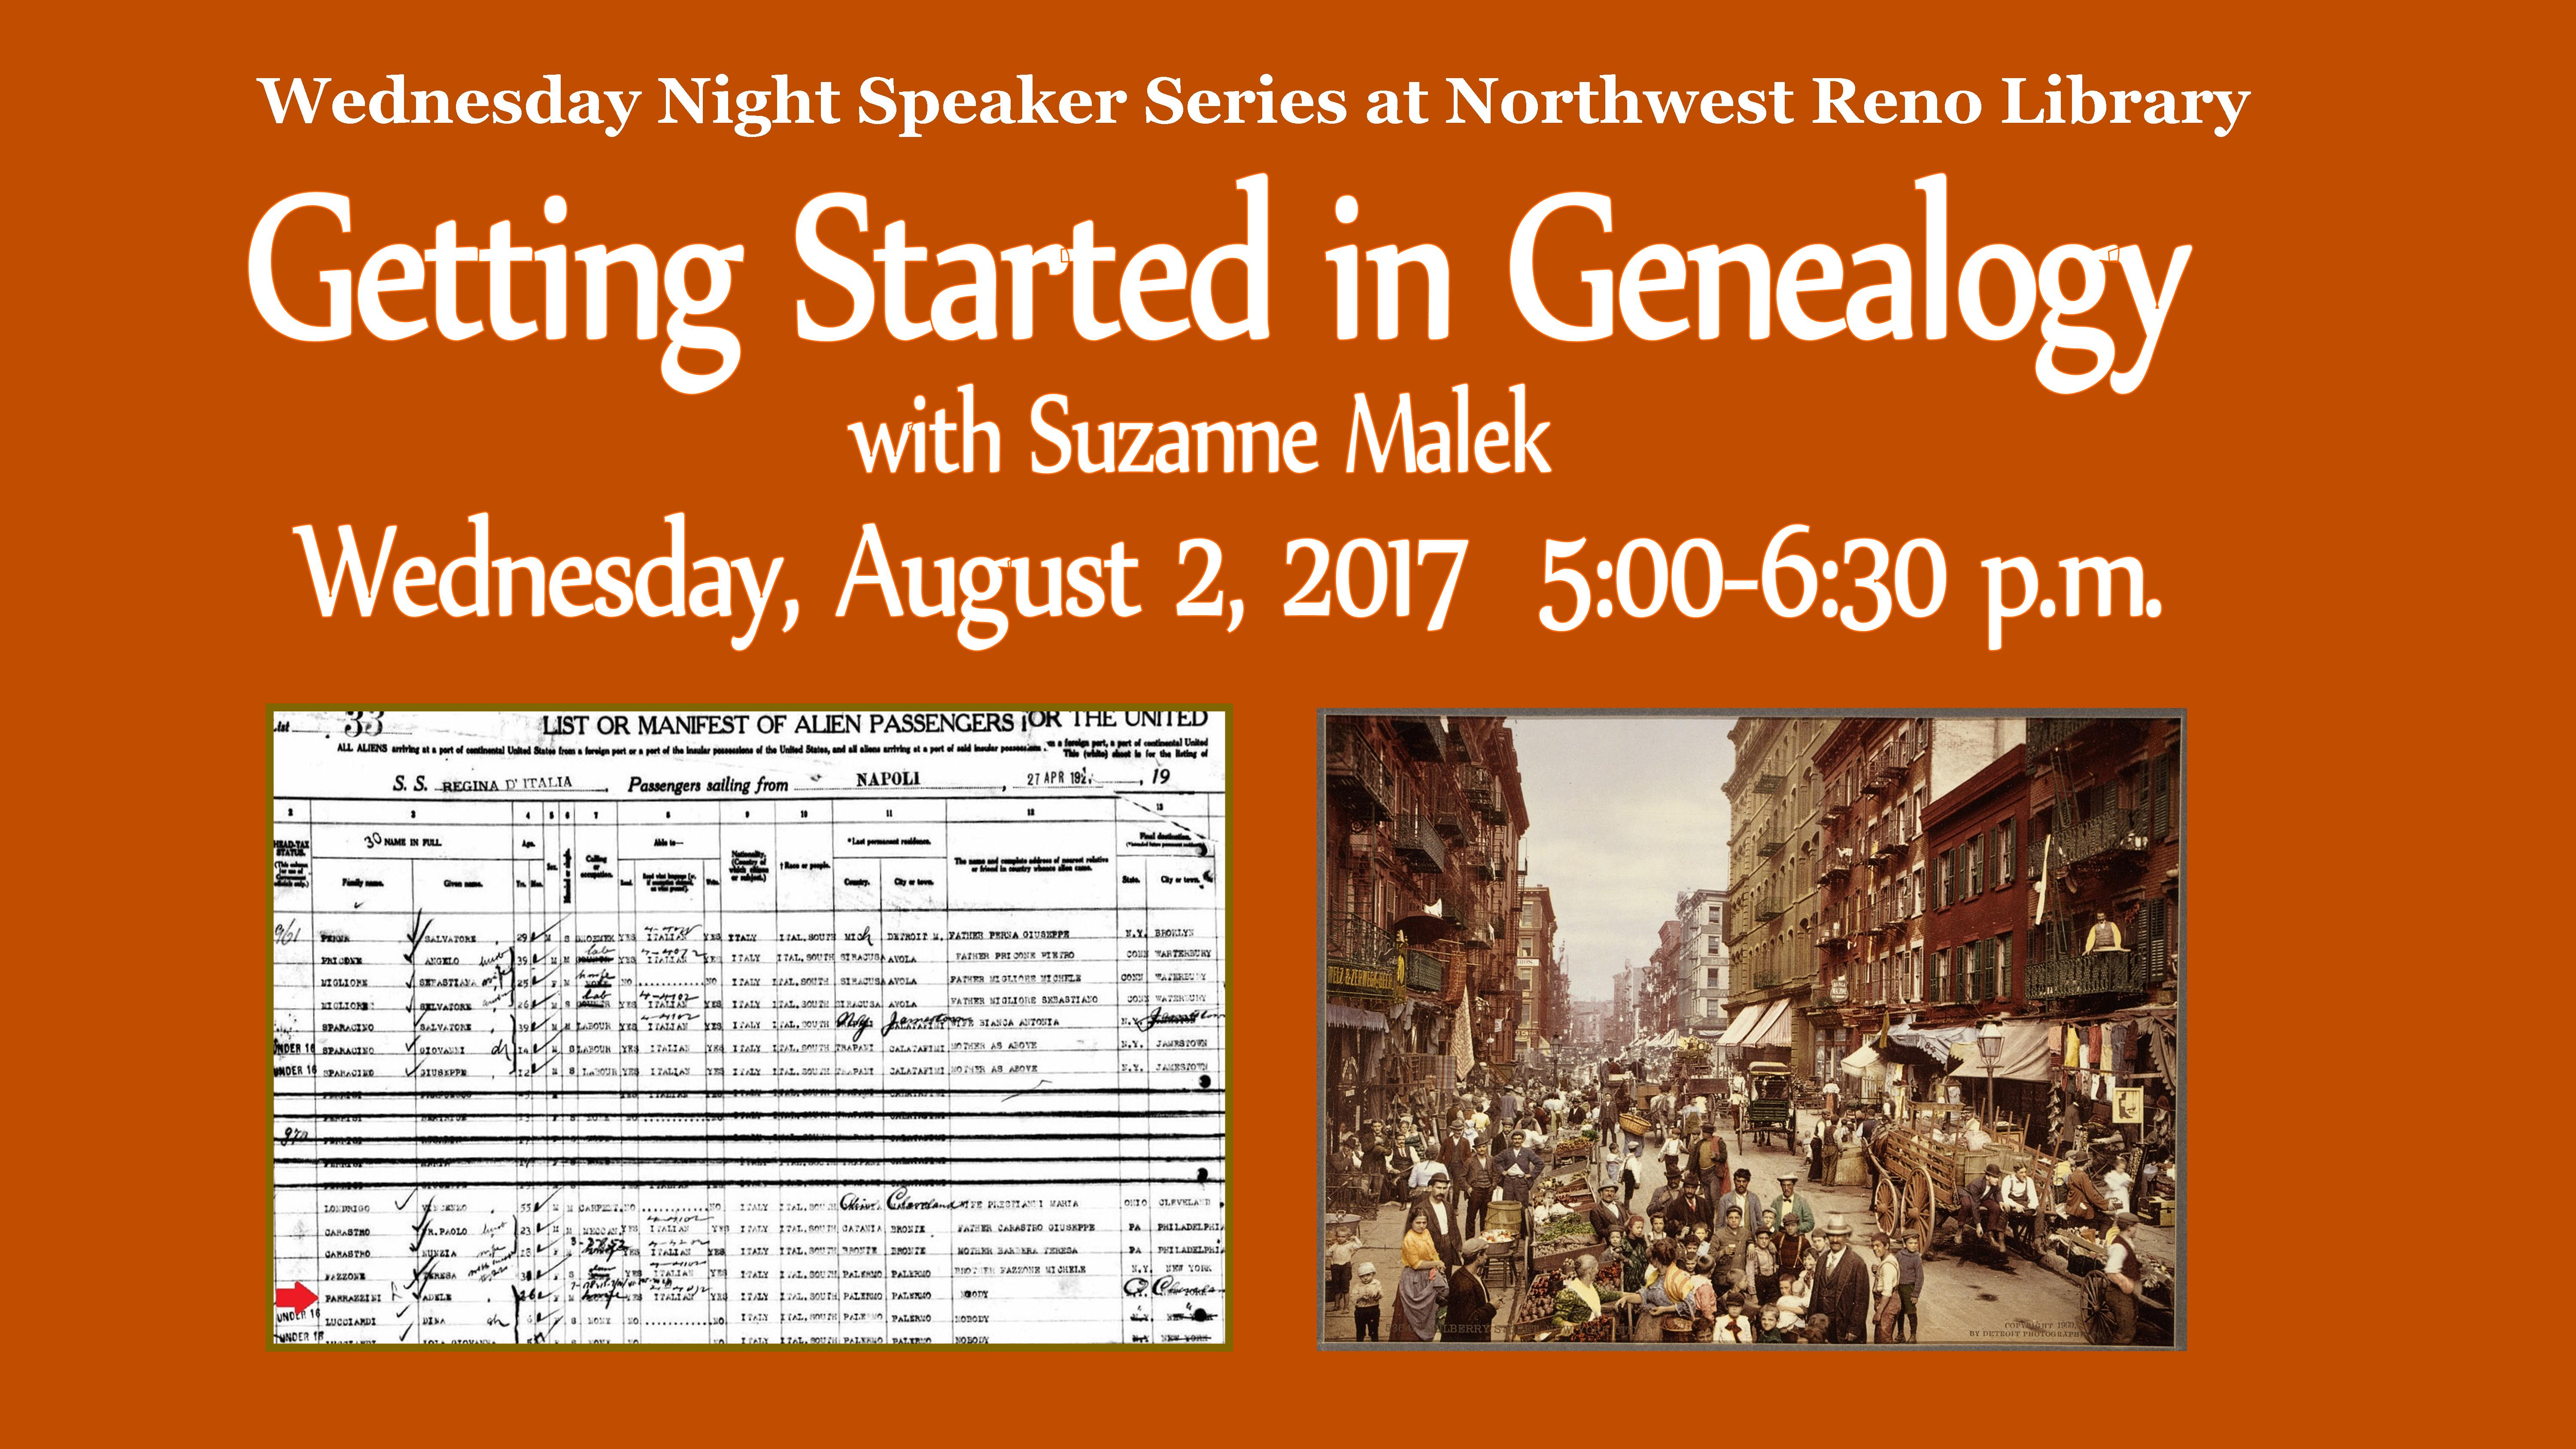 Speaker Series: Census Records and Genealogy, with TMCC Librarian Suzanne Malek